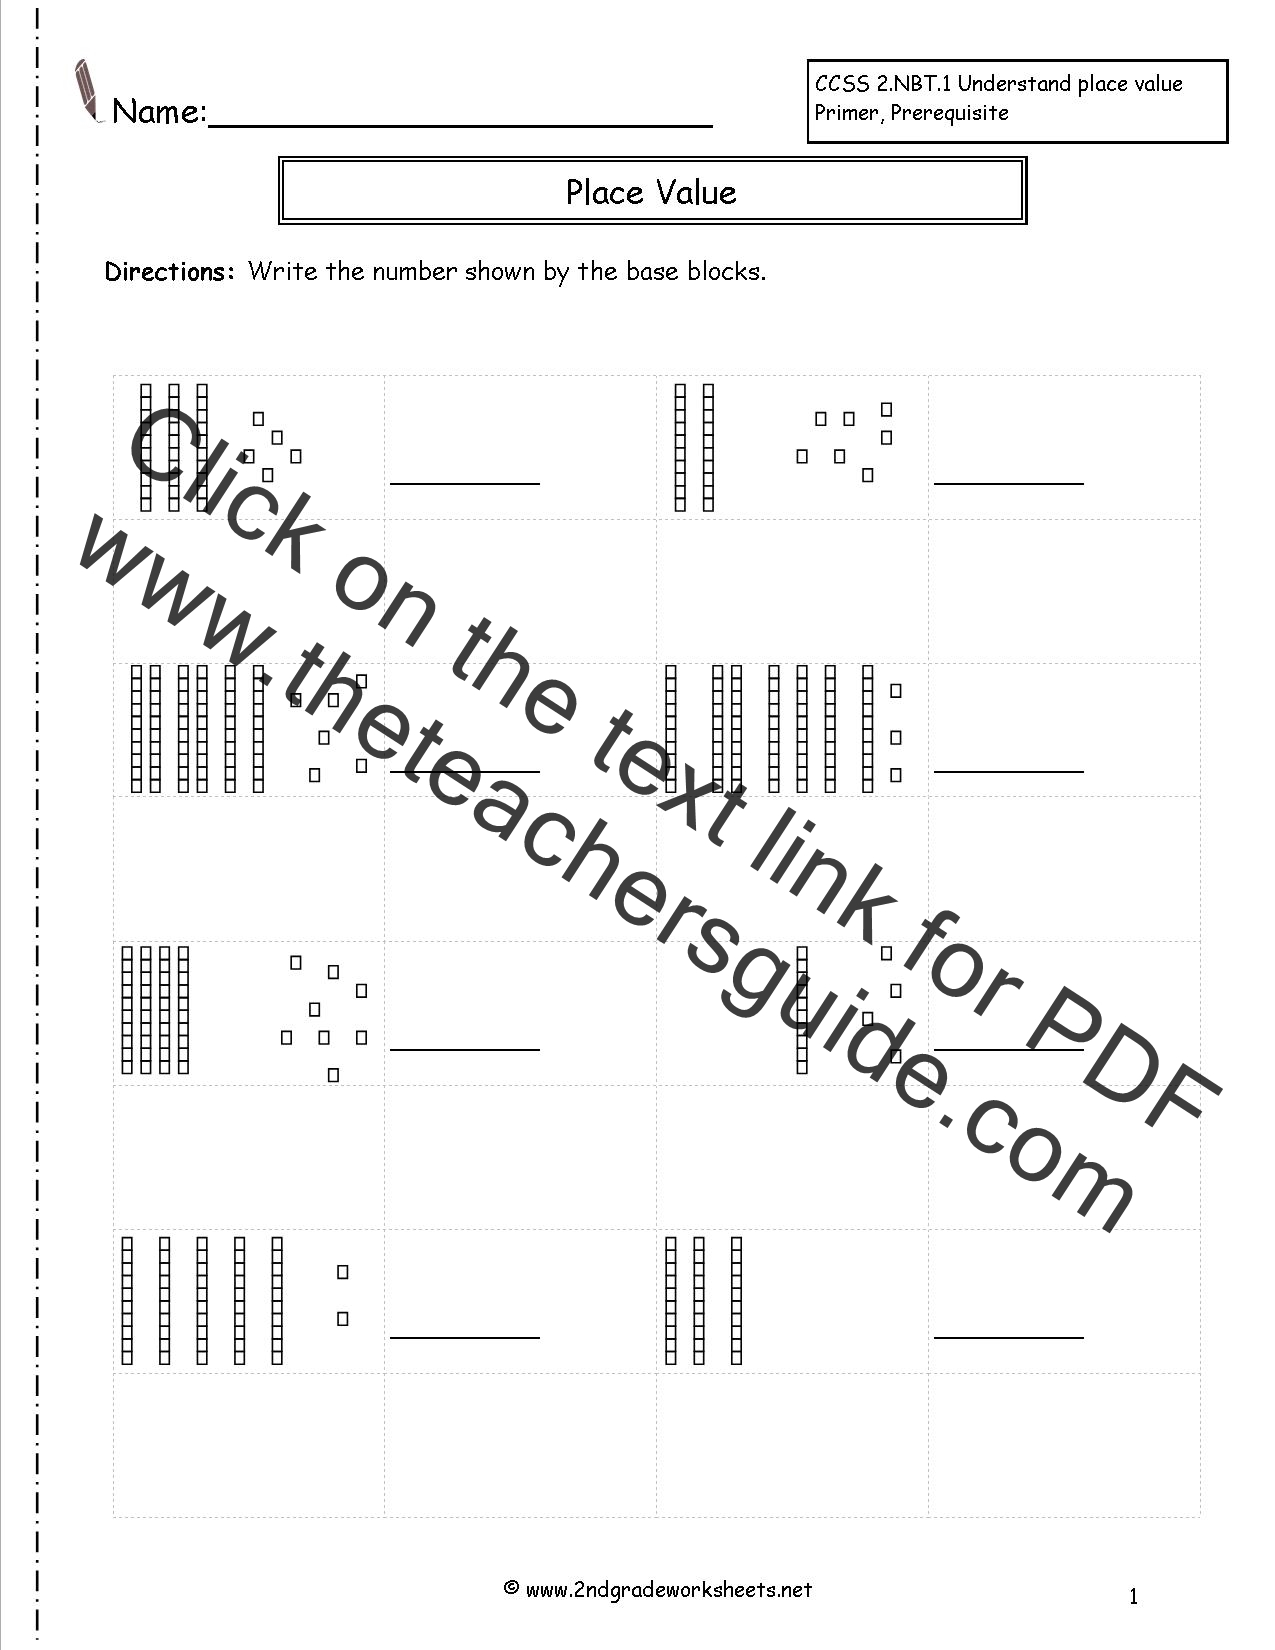 hight resolution of Second Grade Place Value Worksheets on Worksheets Ideas 775